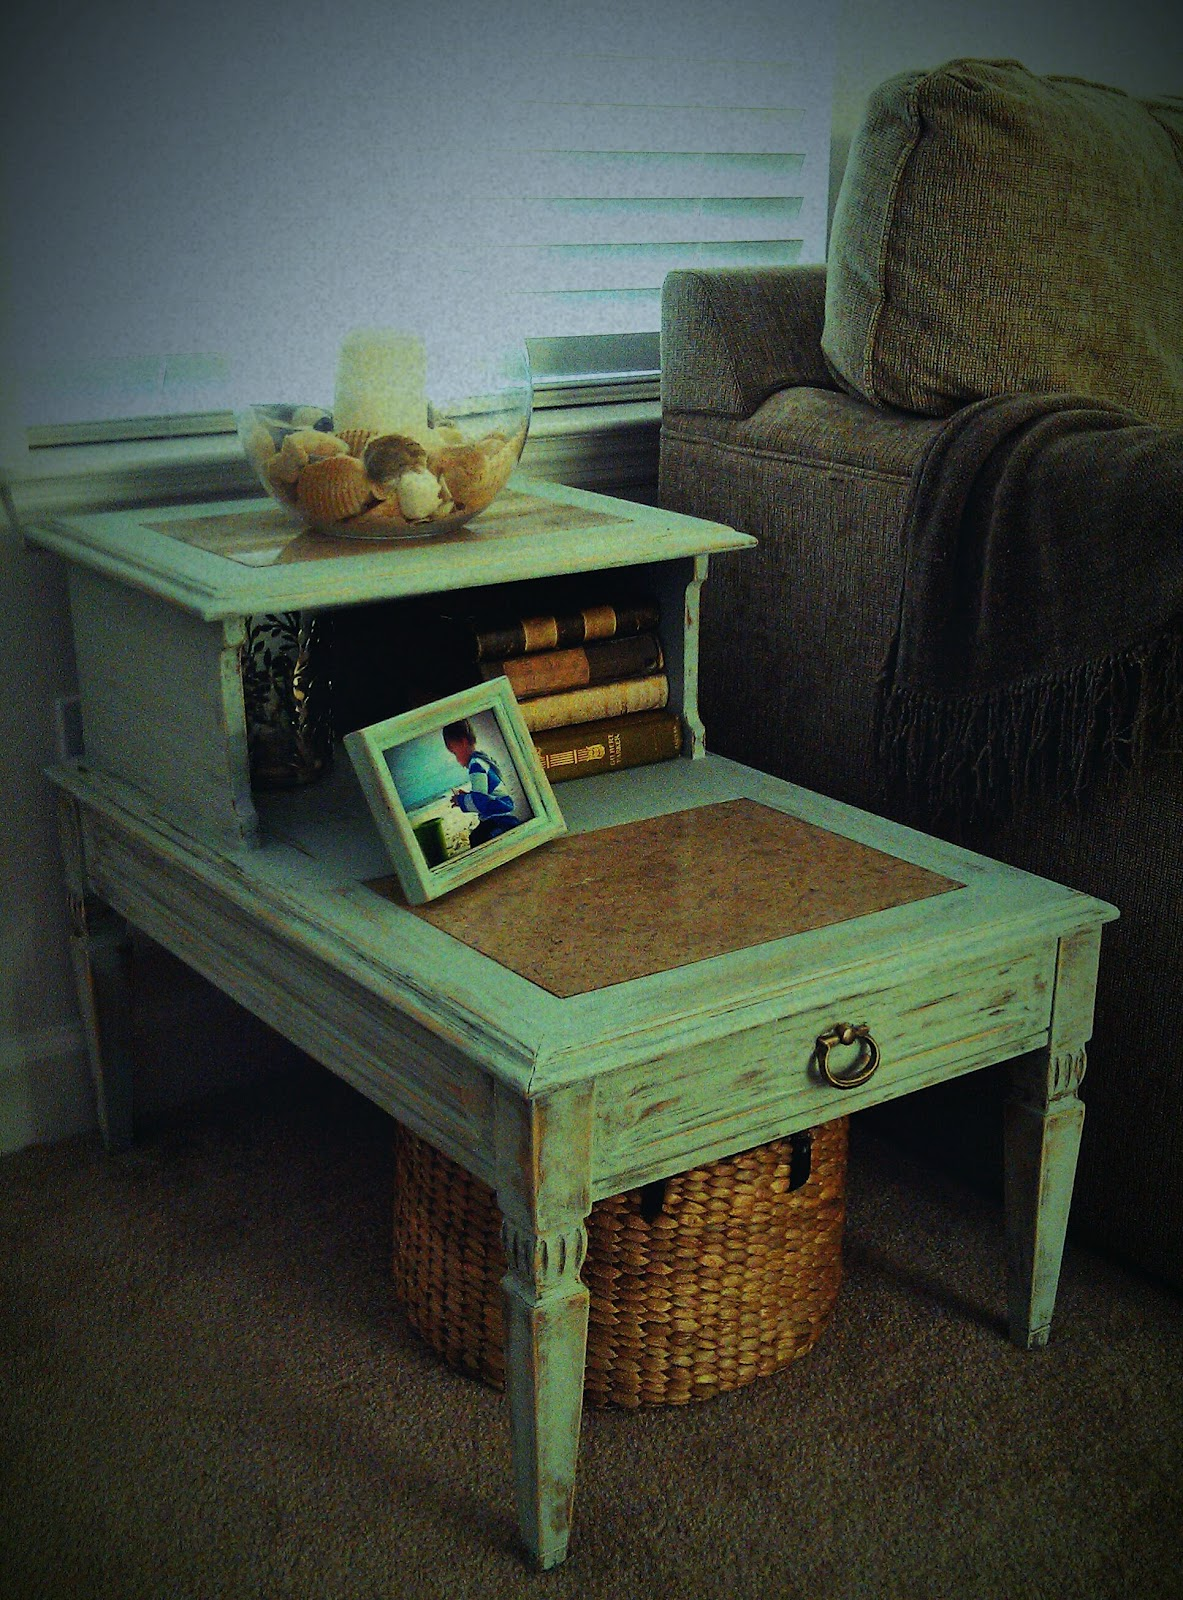 Charmingly Shabby Designs Two Tier Side